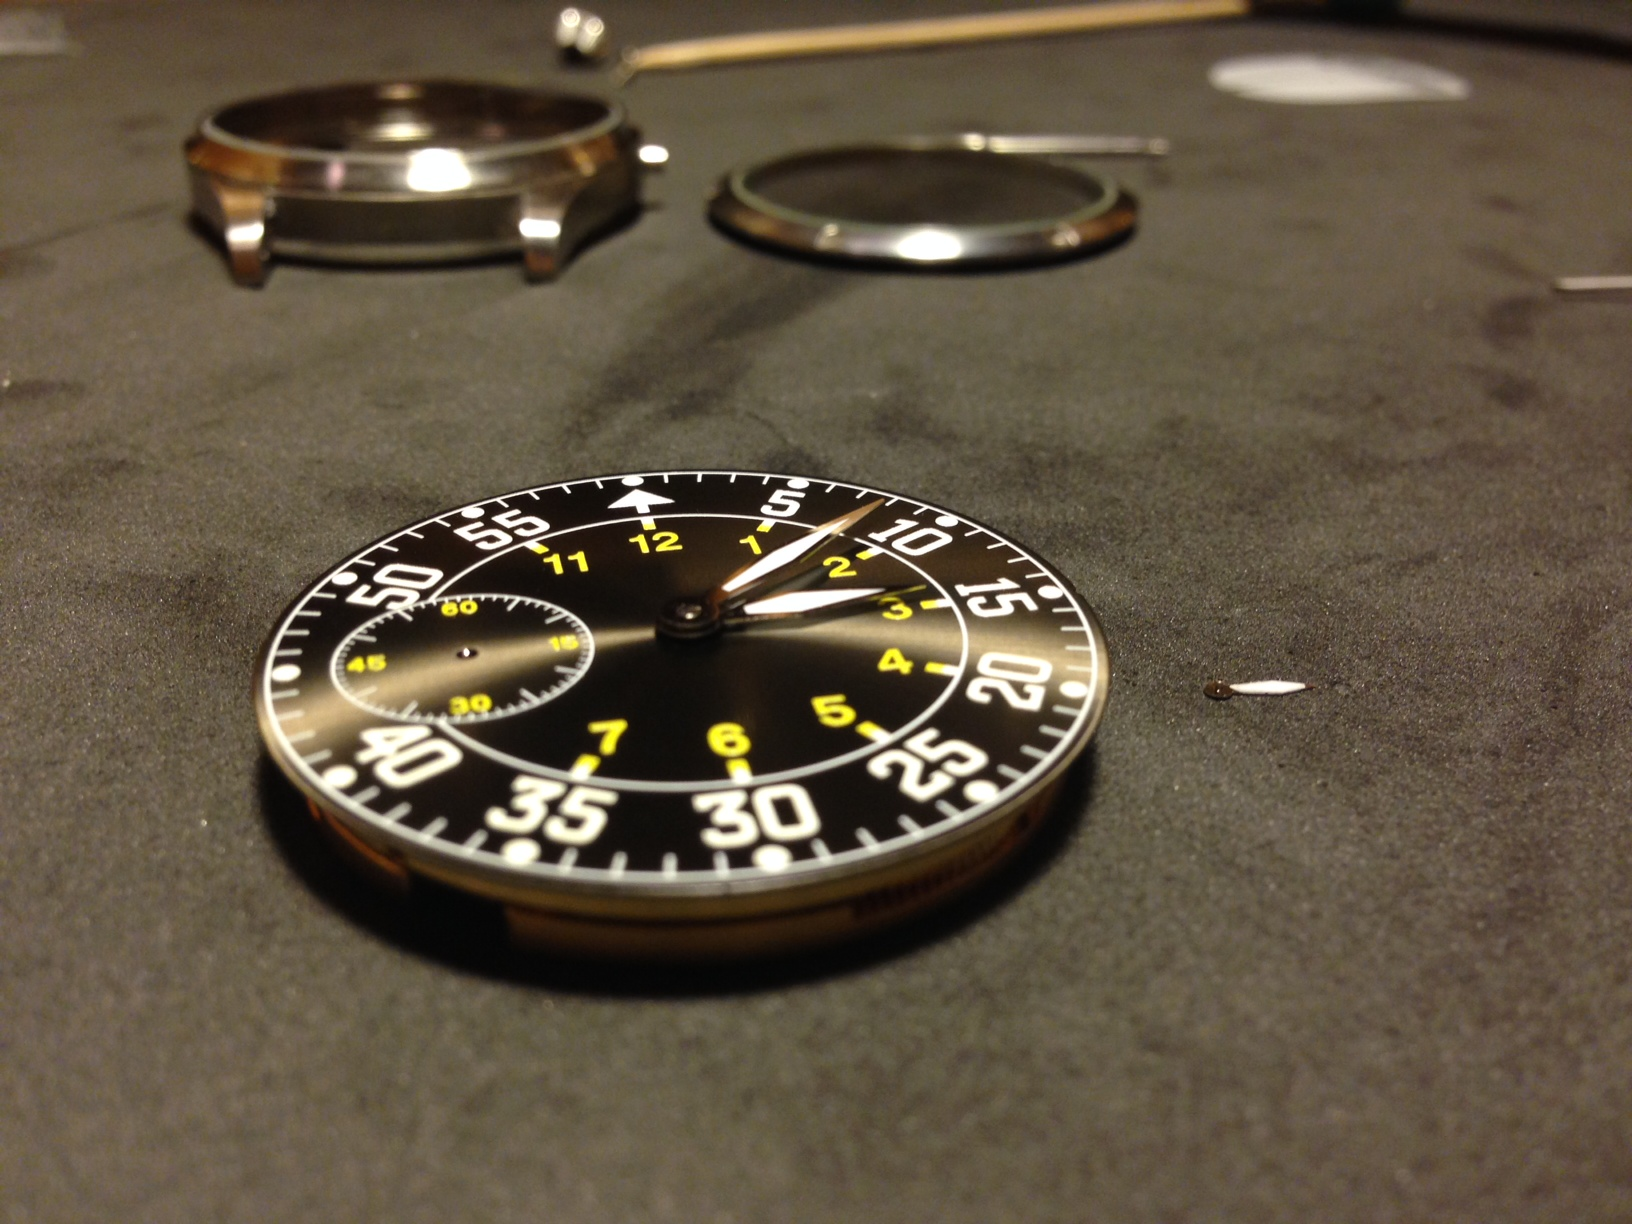 How to build your own mechanical watch - attach the minute hand